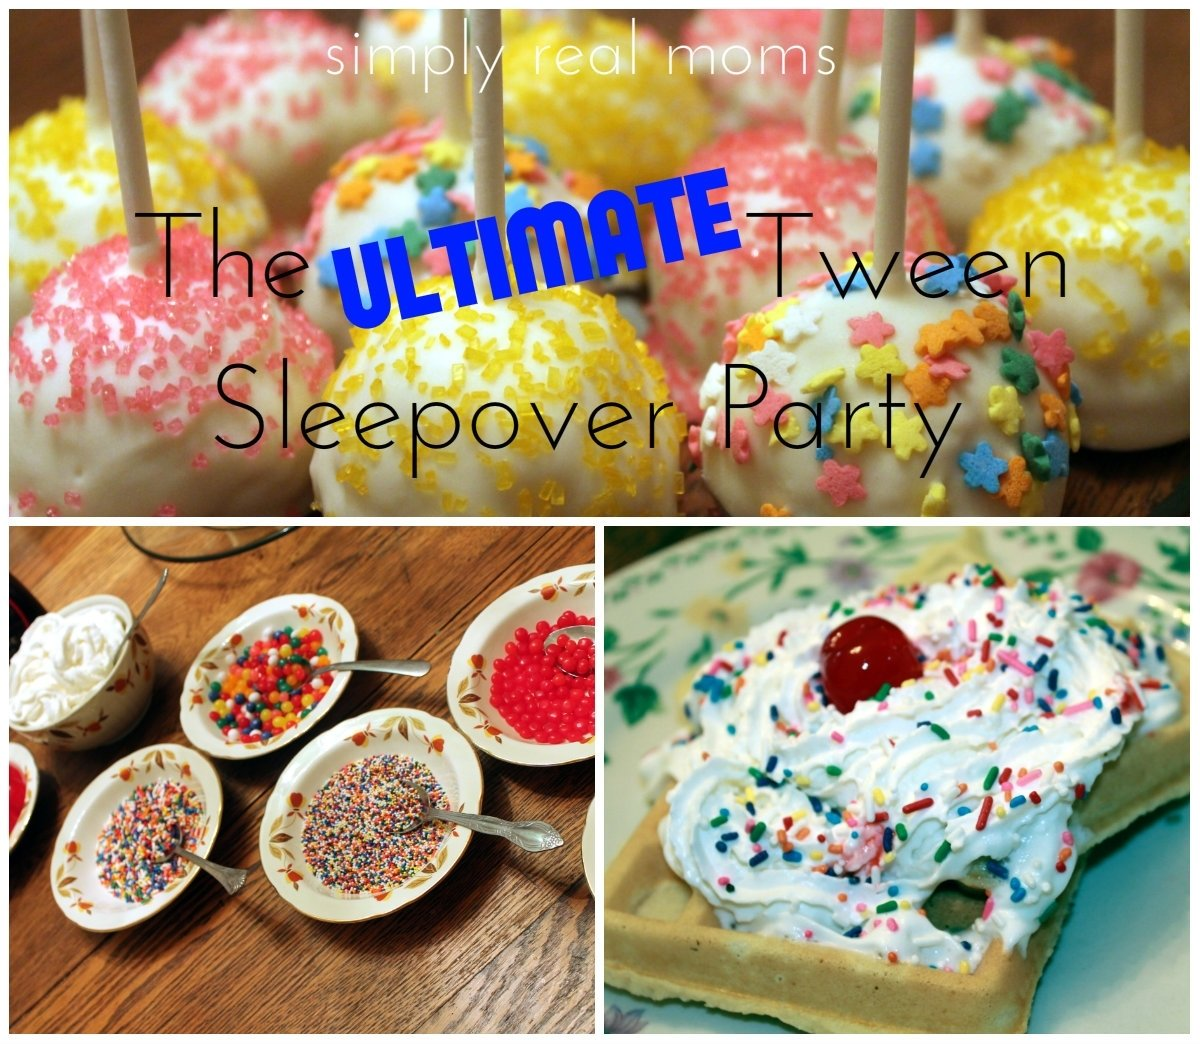 10 Fantastic Fun Ideas For A Sleepover the ultimate tween sleepover party ideas simply real moms 2020